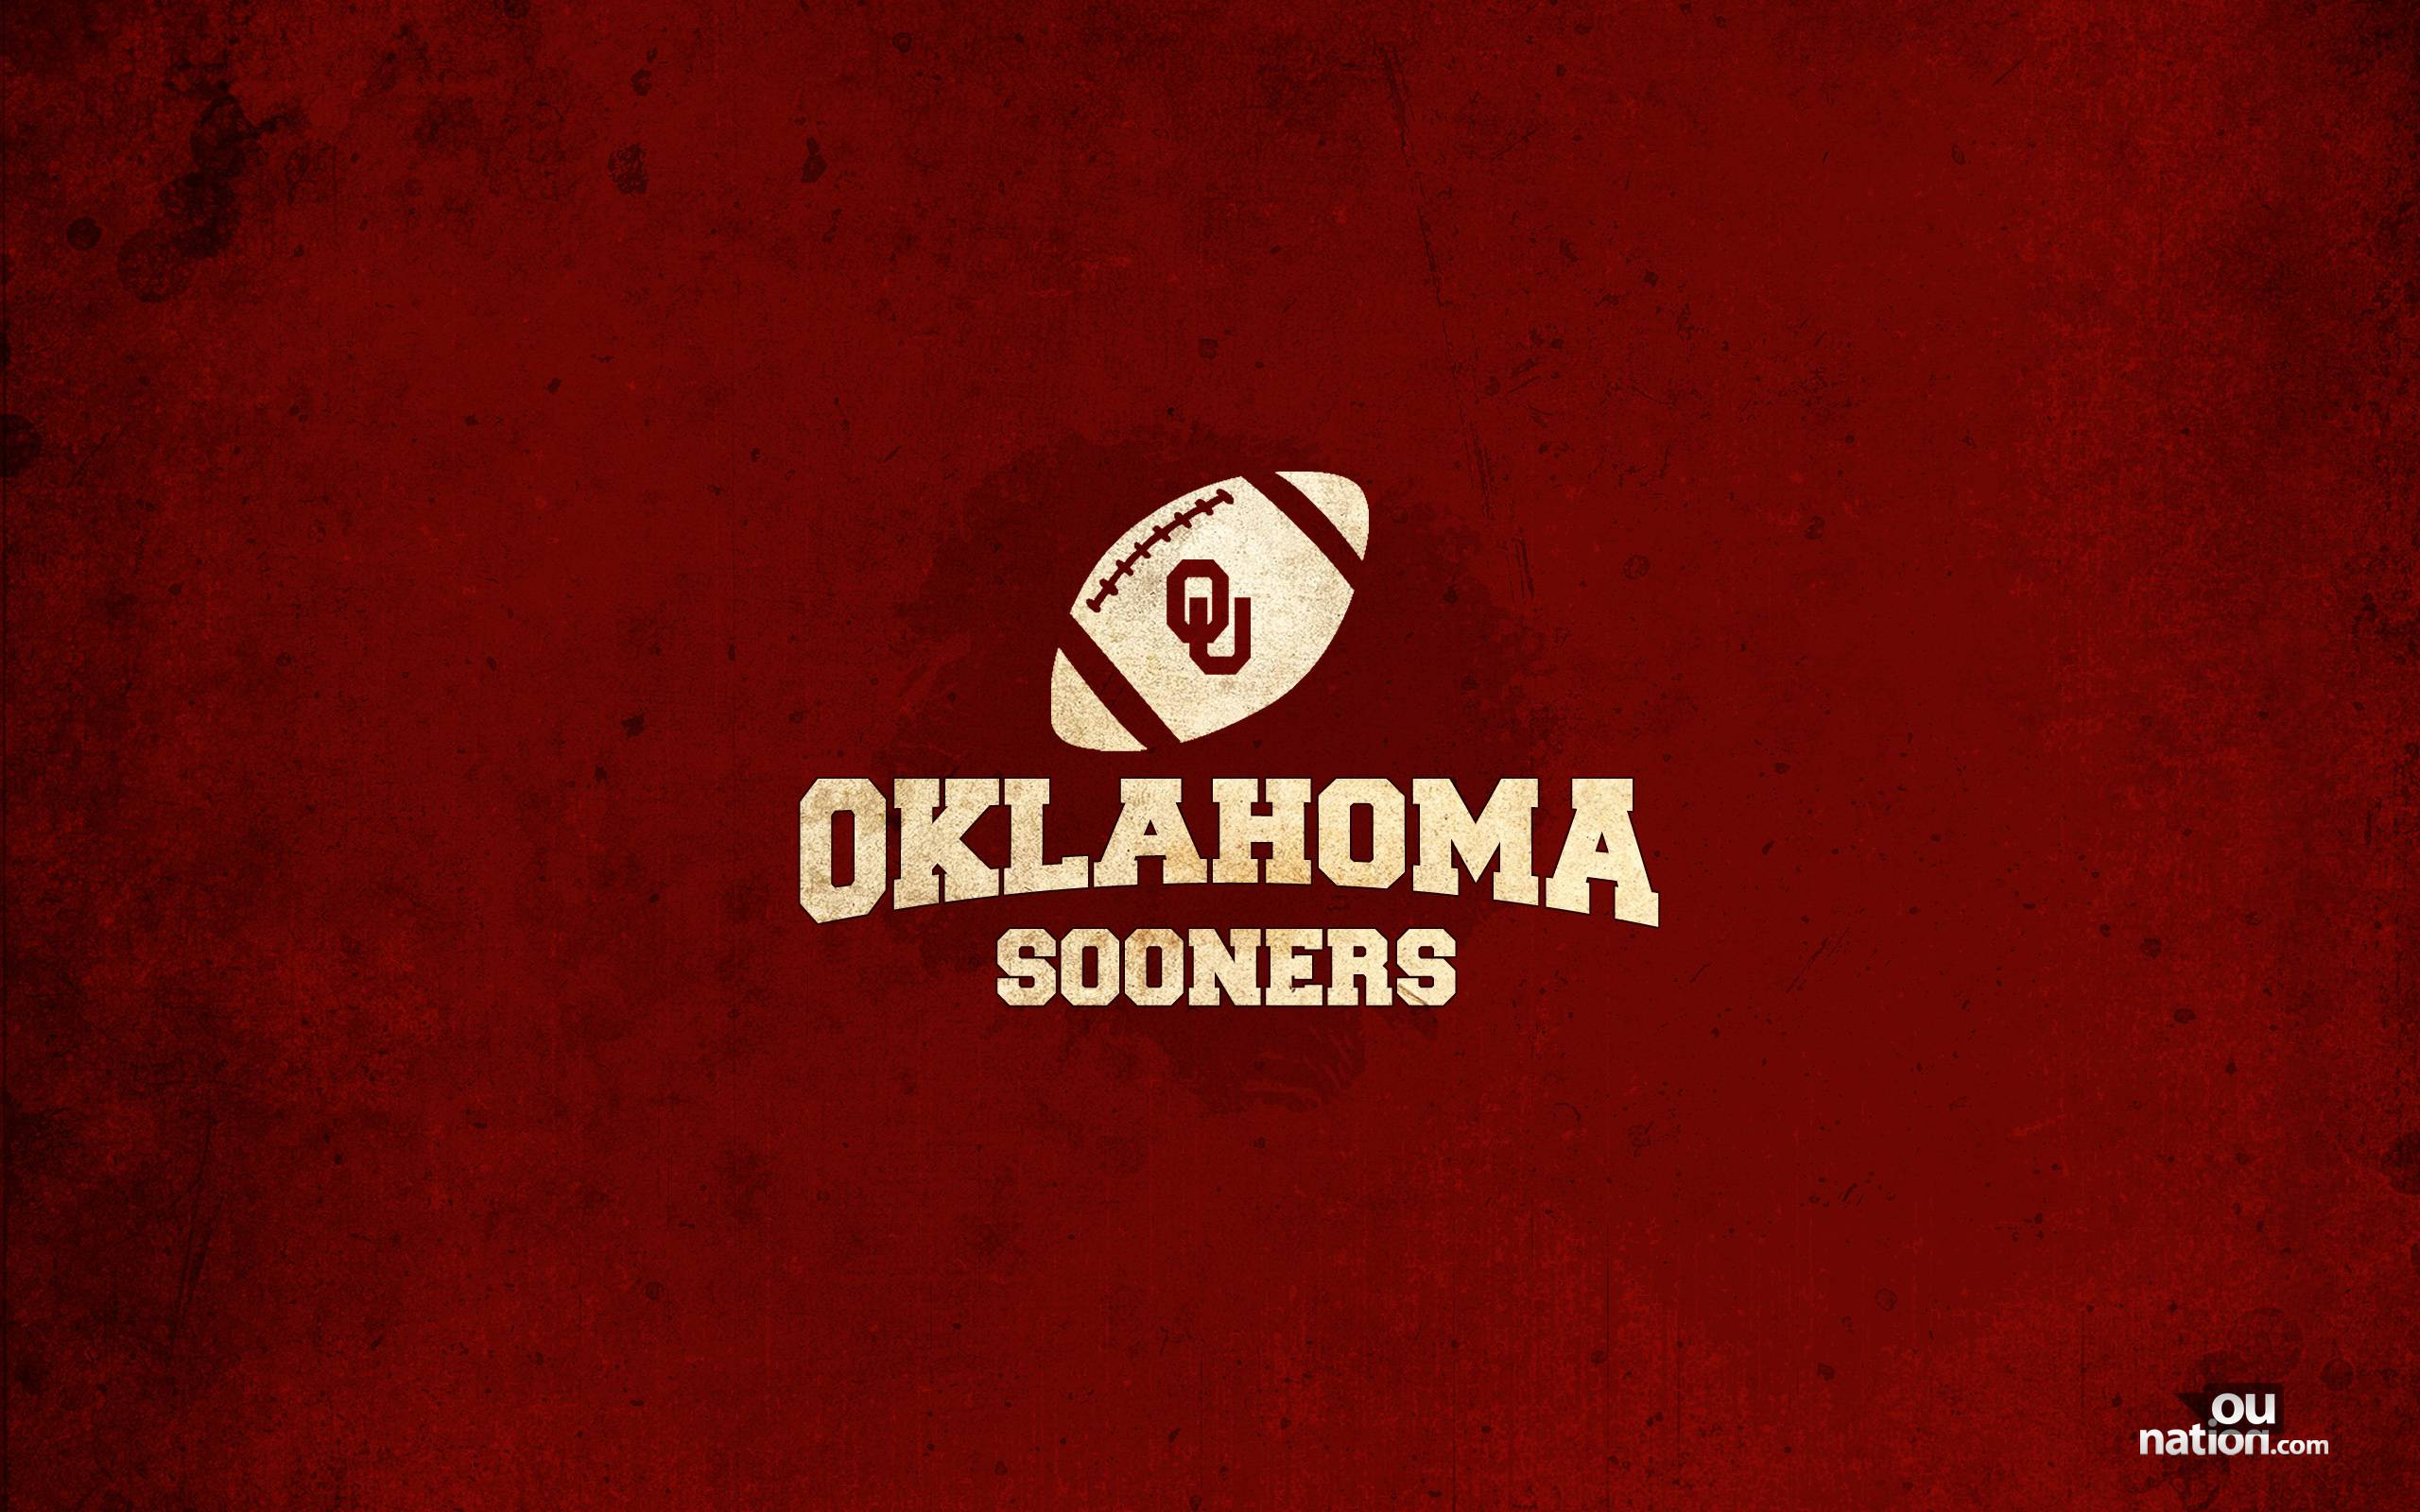 Oklahoma Sooners Backgrounds Wallpaper Cave HD Wallpapers Download Free Images Wallpaper [1000image.com]